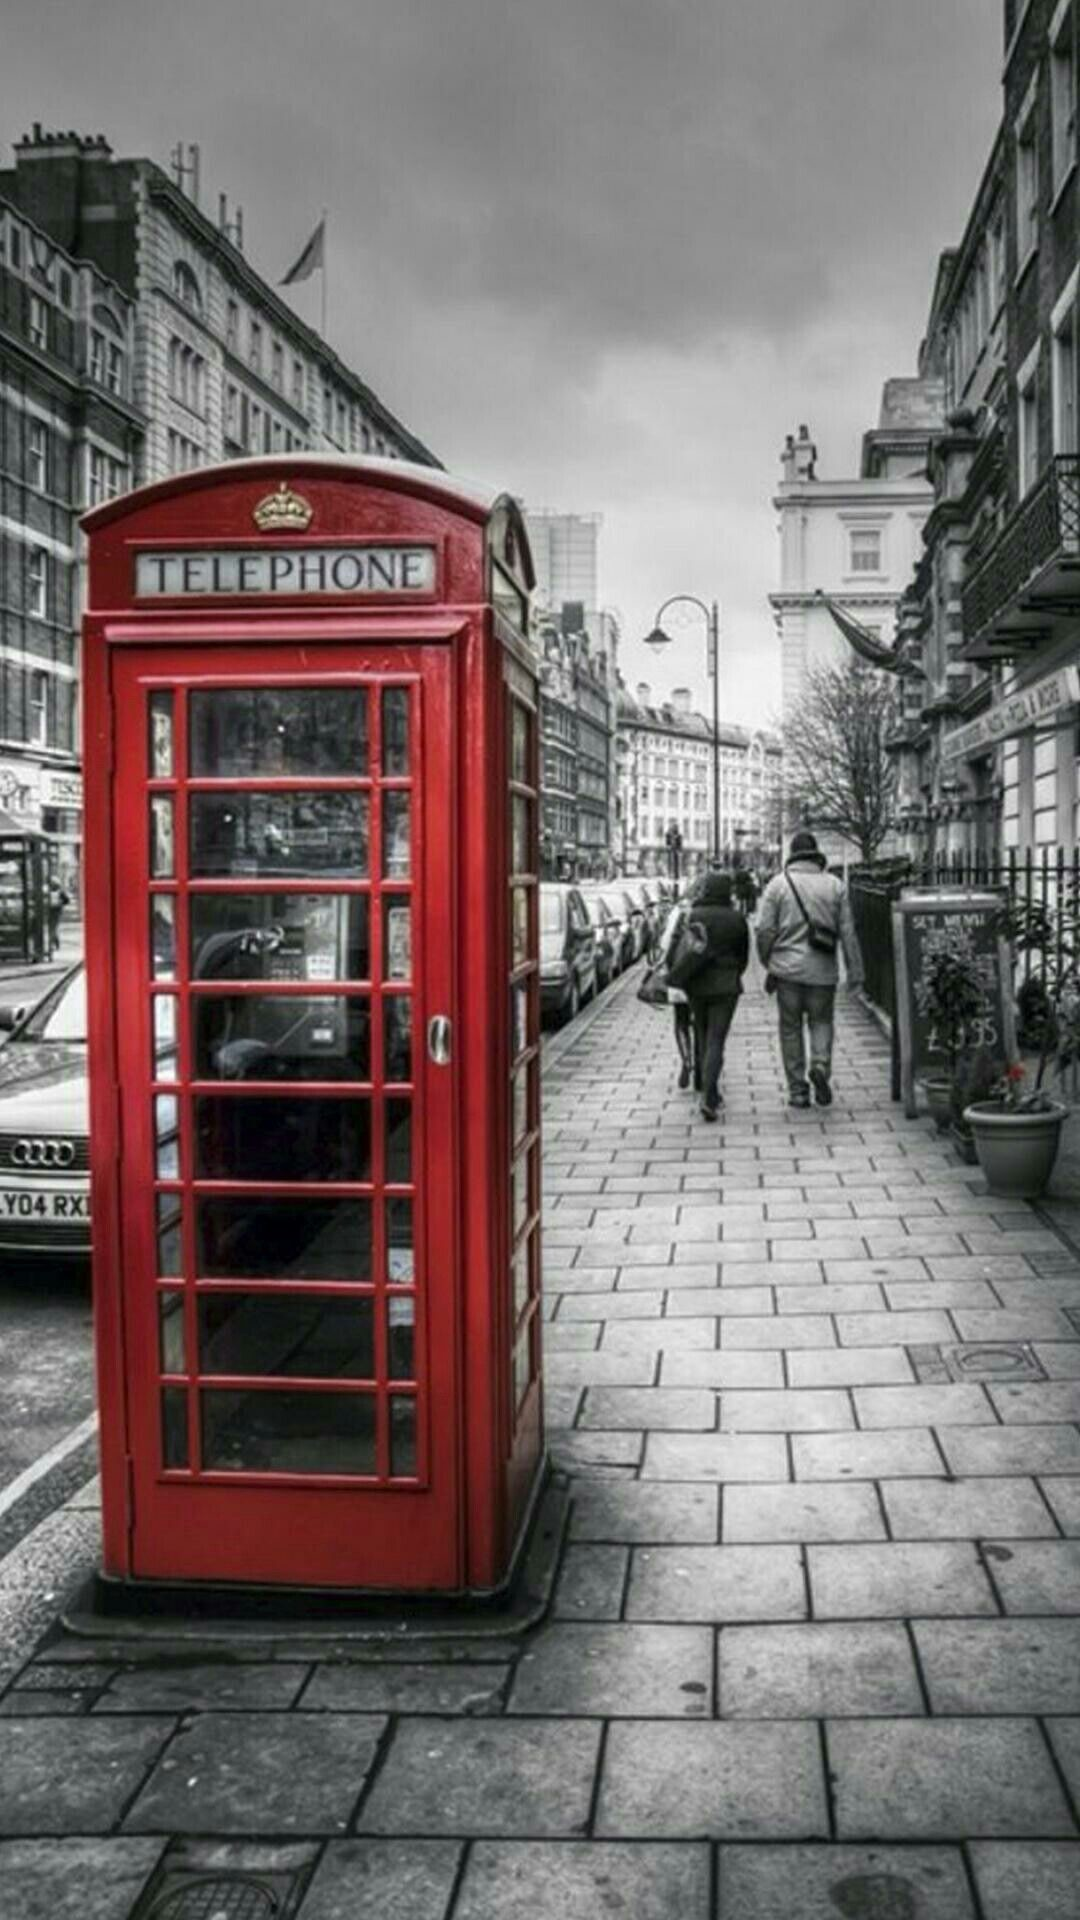 1080x1920 London Telephone Booth, London Street, London Calling, London England,  Iphone Wallpaper,